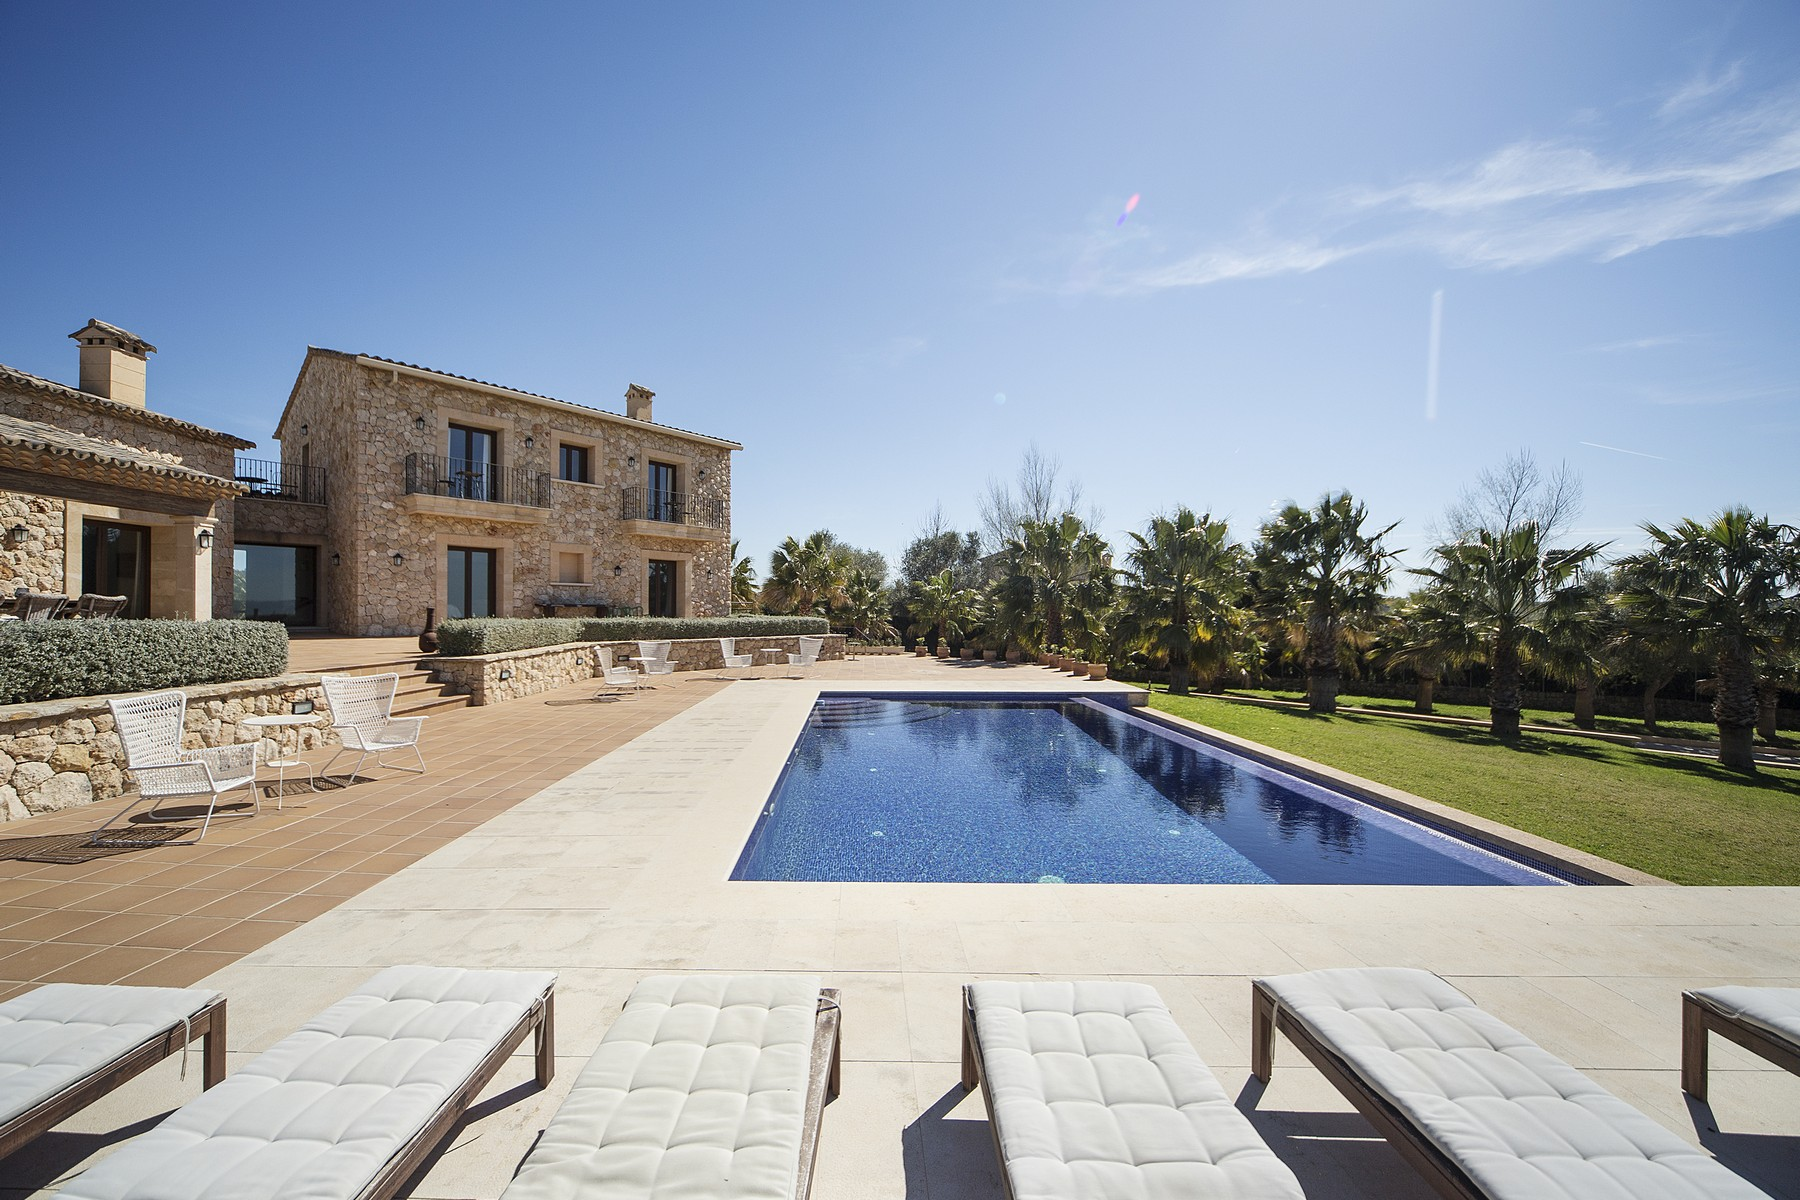 Single Family Home for Sale at Stunning, luxury Country Estate in Son Gual Suelo Polígono Other Balearic Islands, Balearic Islands, 07199 Spain